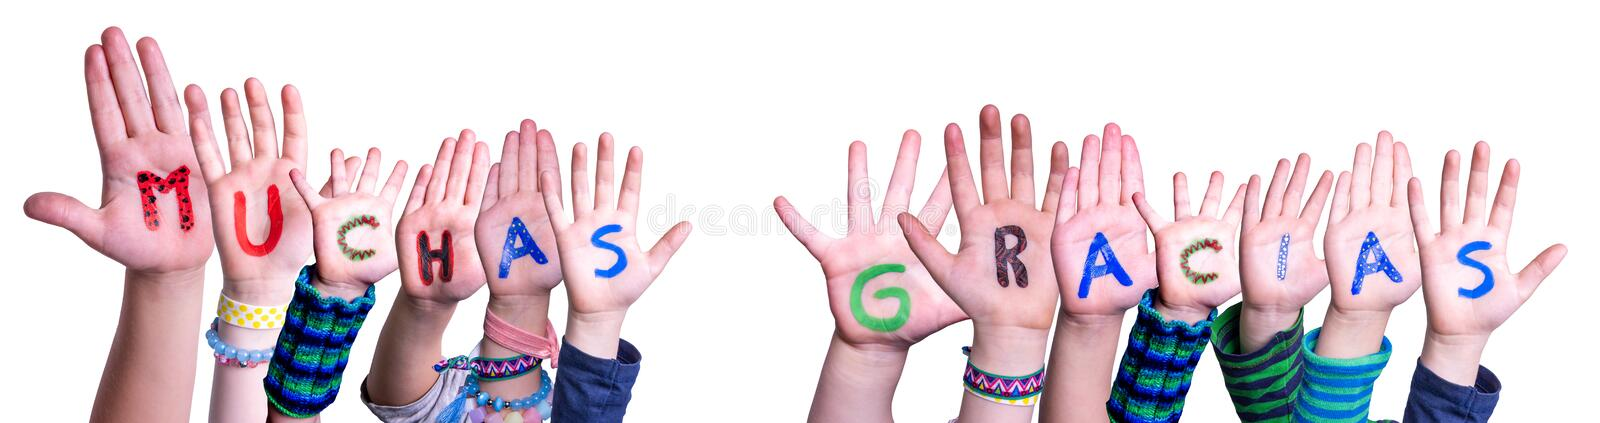 Children Hands Building Word Muchas Gracias Means Thank You, Isolated Background. Children Hands Building Colorful Spanish Word Muchas Gracias Means Thank You royalty free stock photography